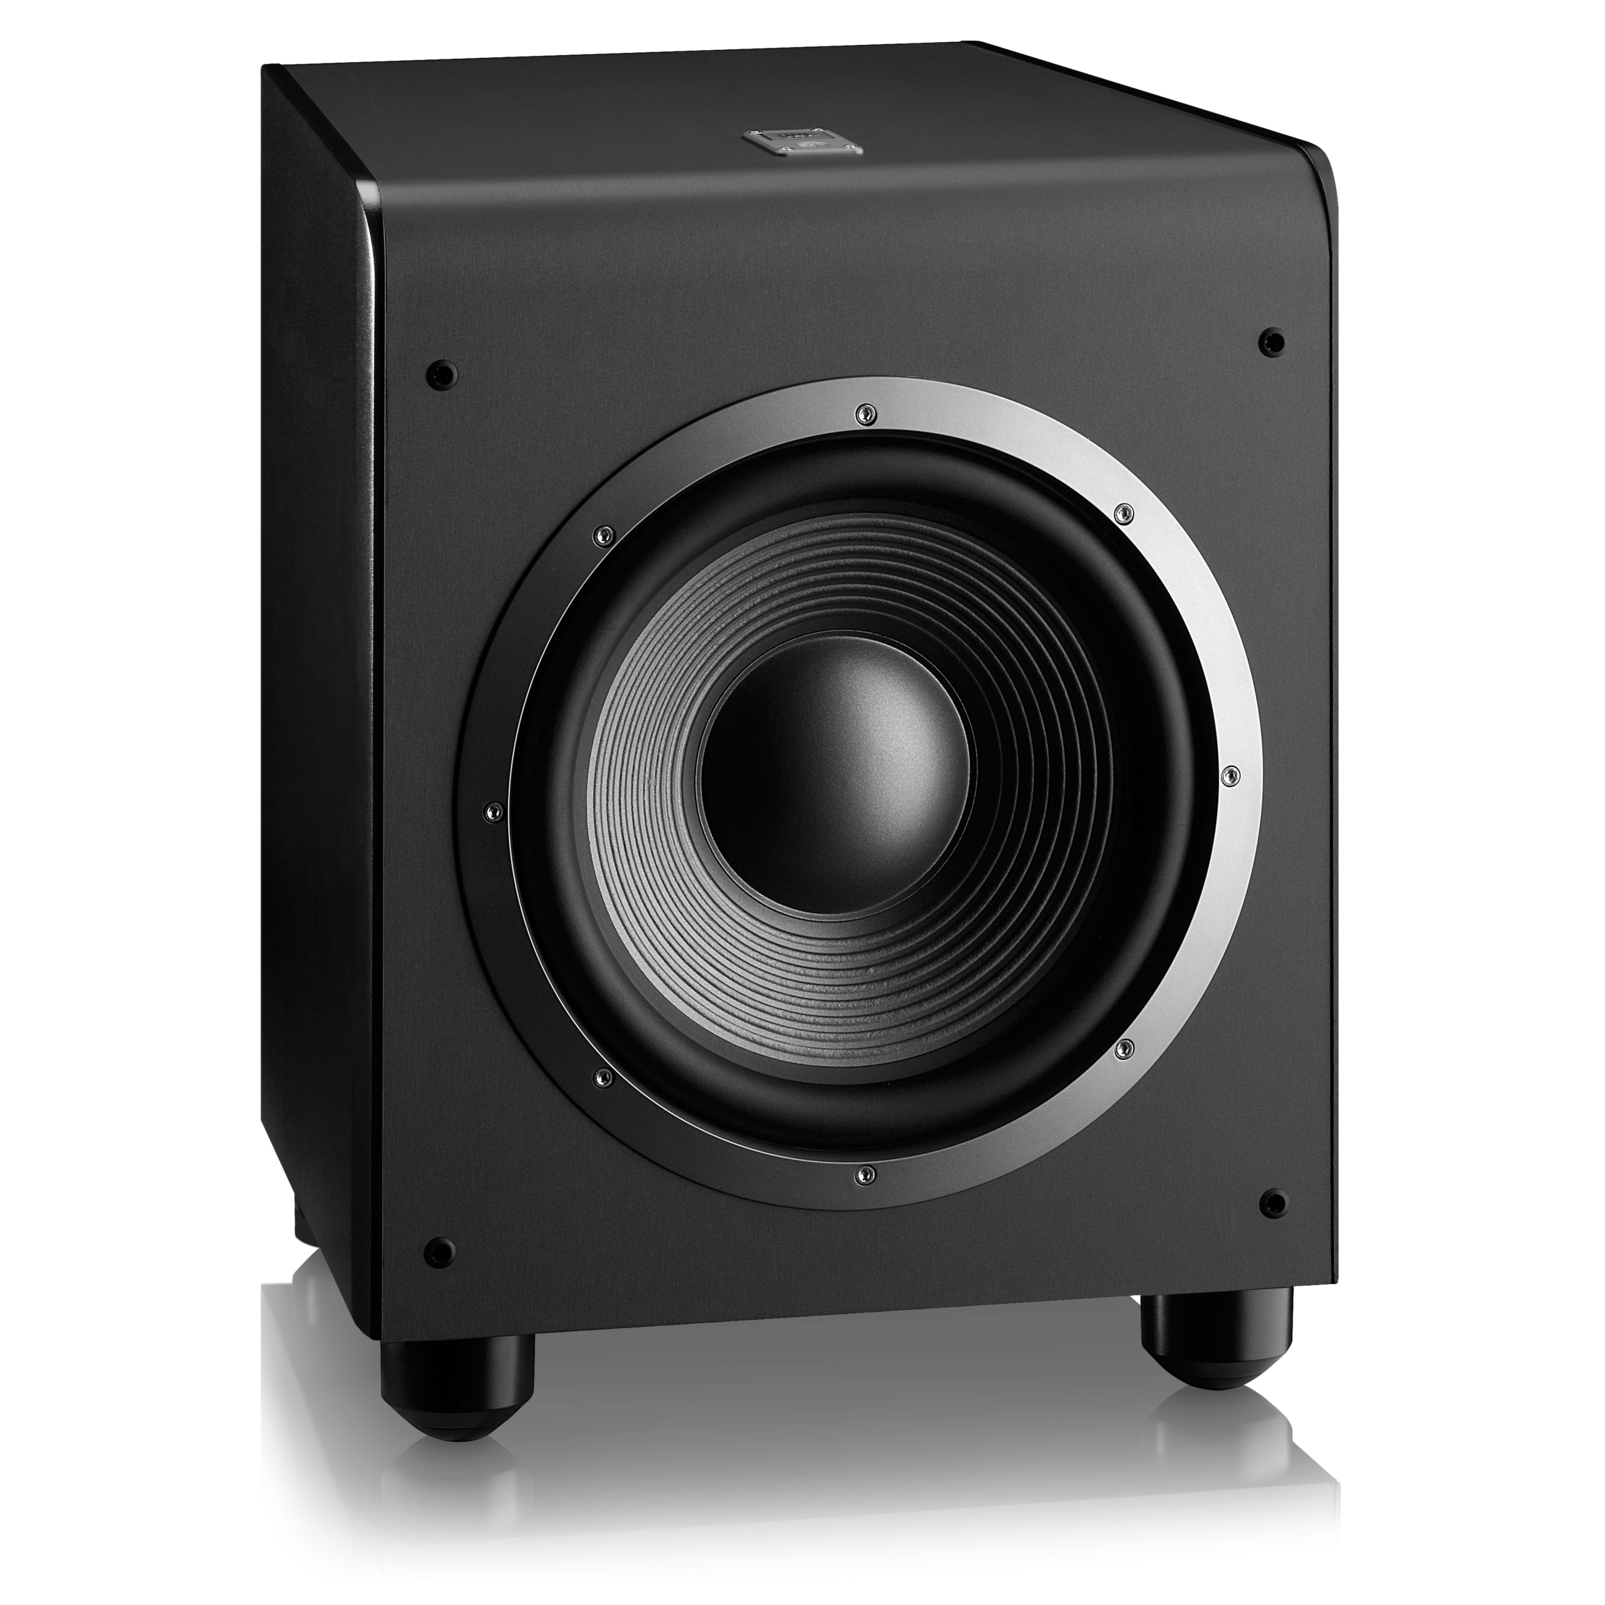 es250p powerful 400 watt subwoofer for your home theater. Black Bedroom Furniture Sets. Home Design Ideas